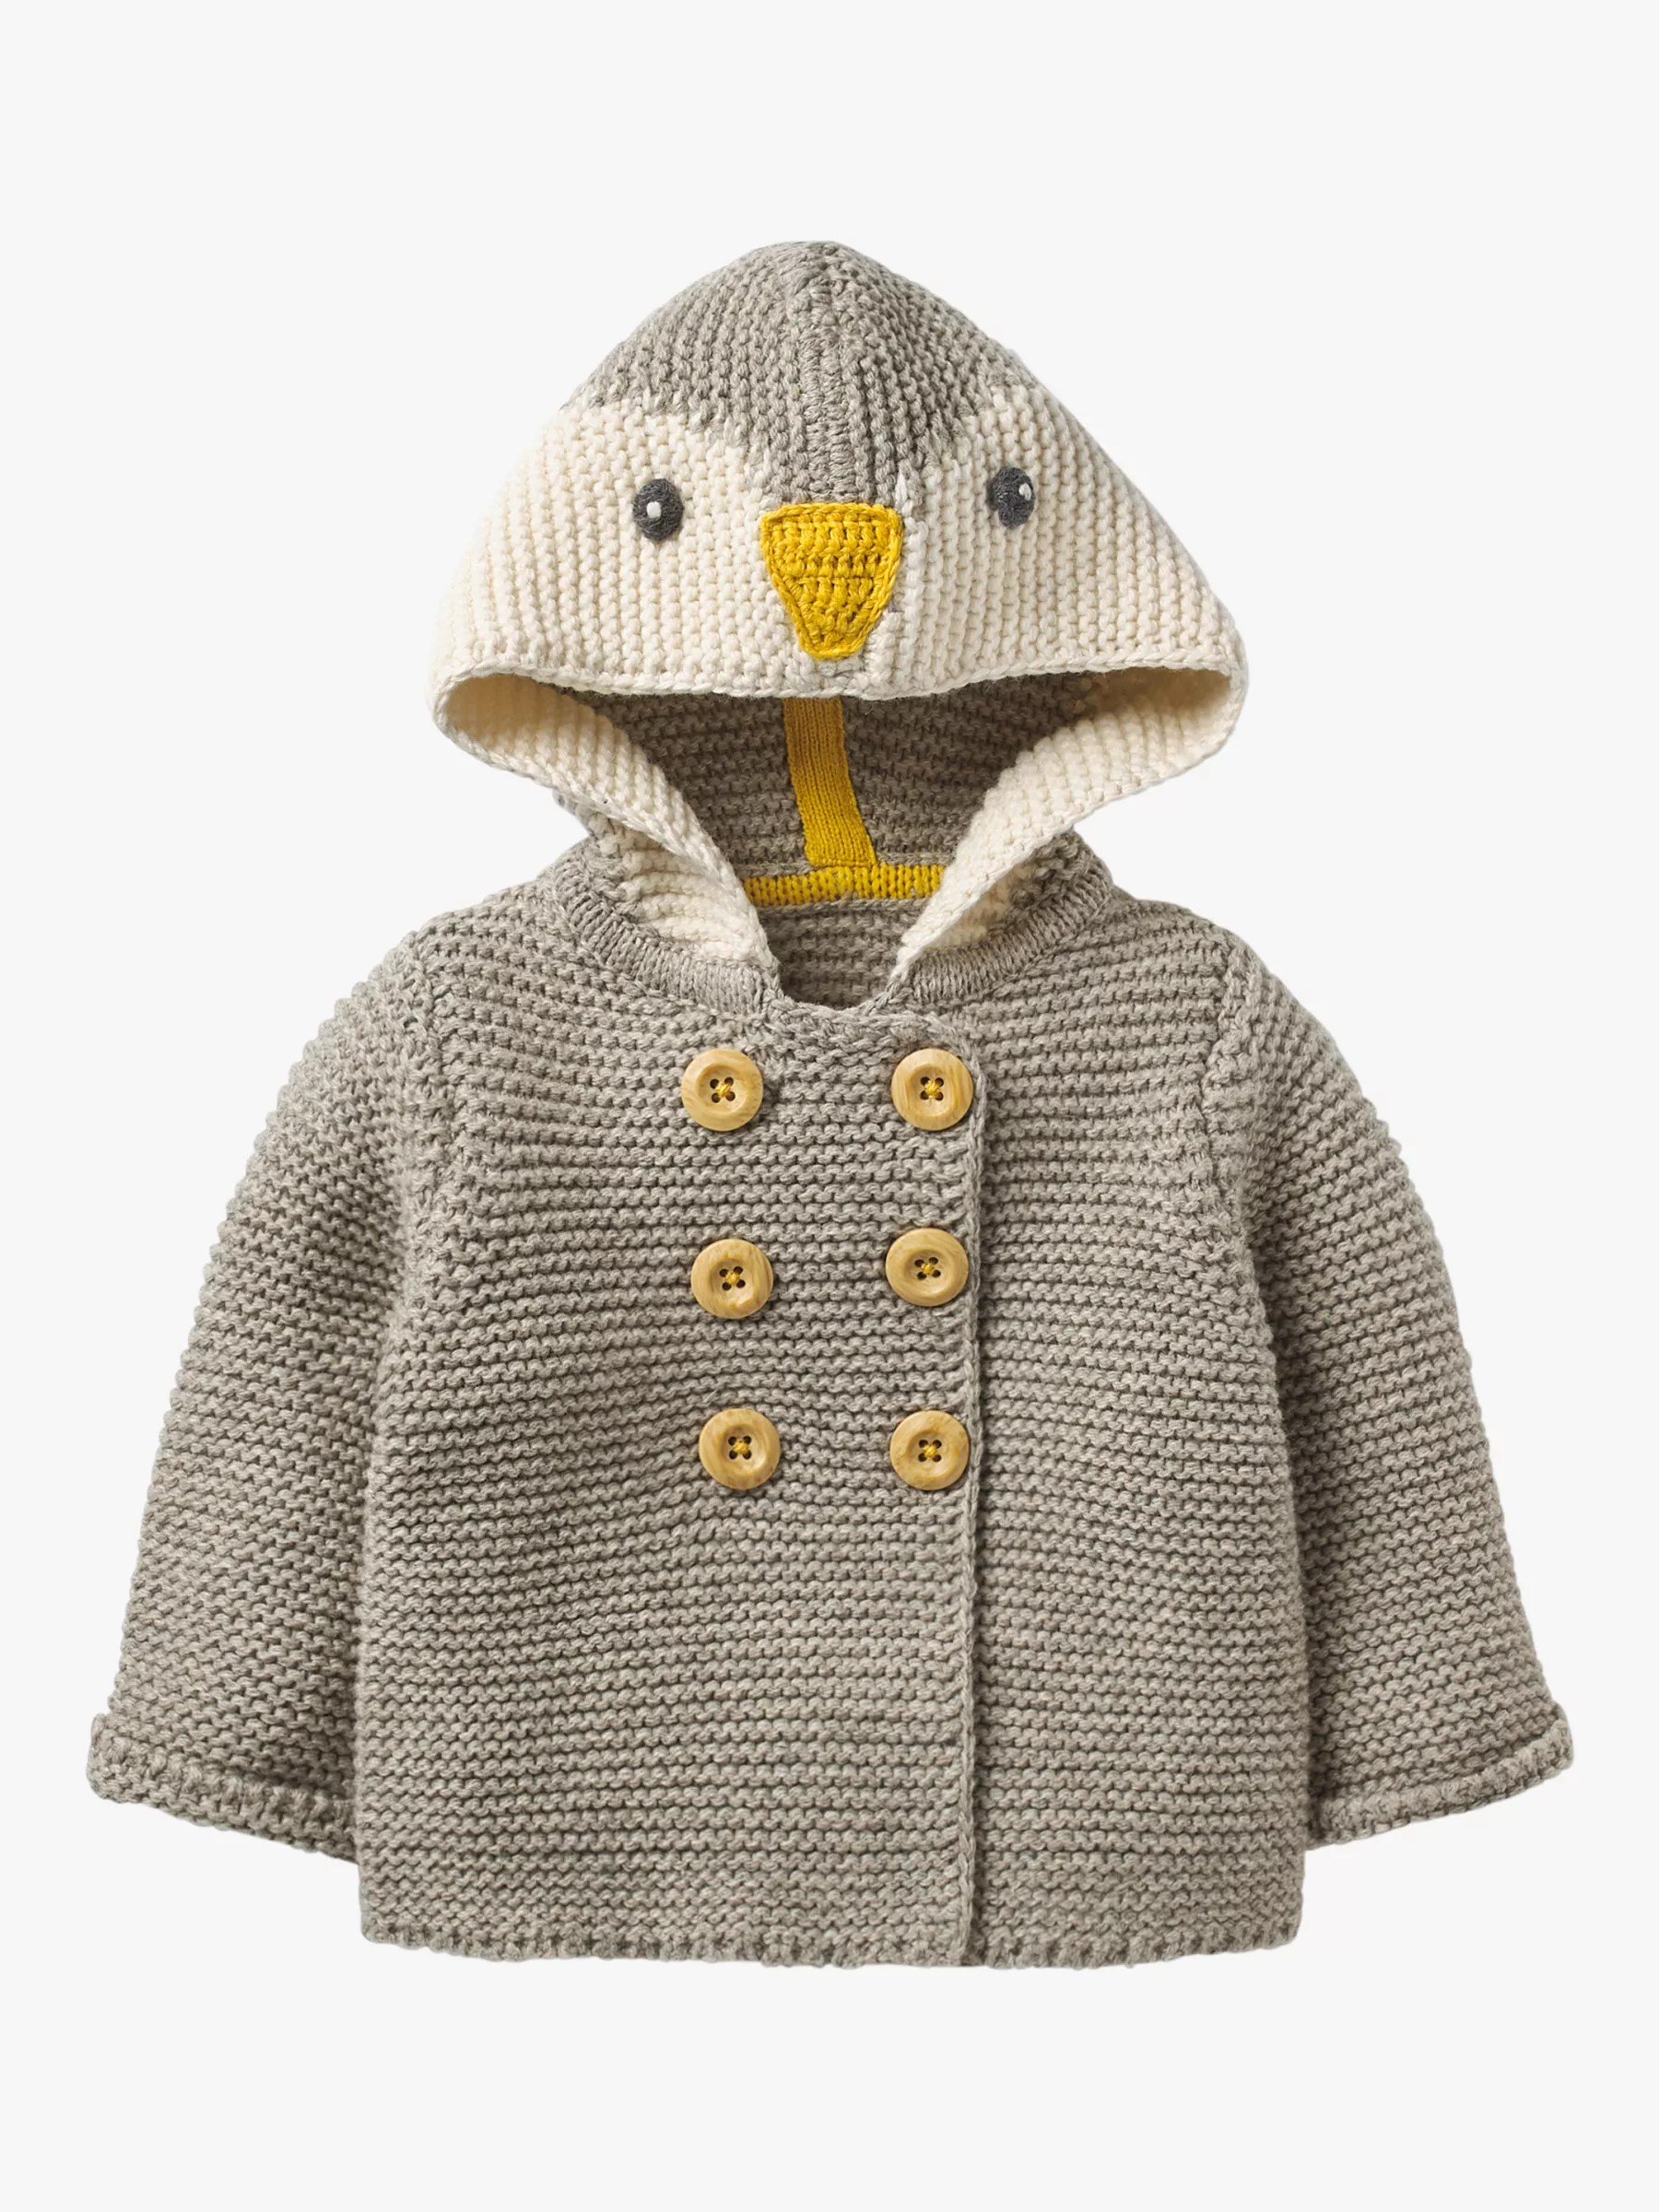 Boden 24 Mini Boden Baby Penguin Knitted Jacket Grey Marl At John Lewis